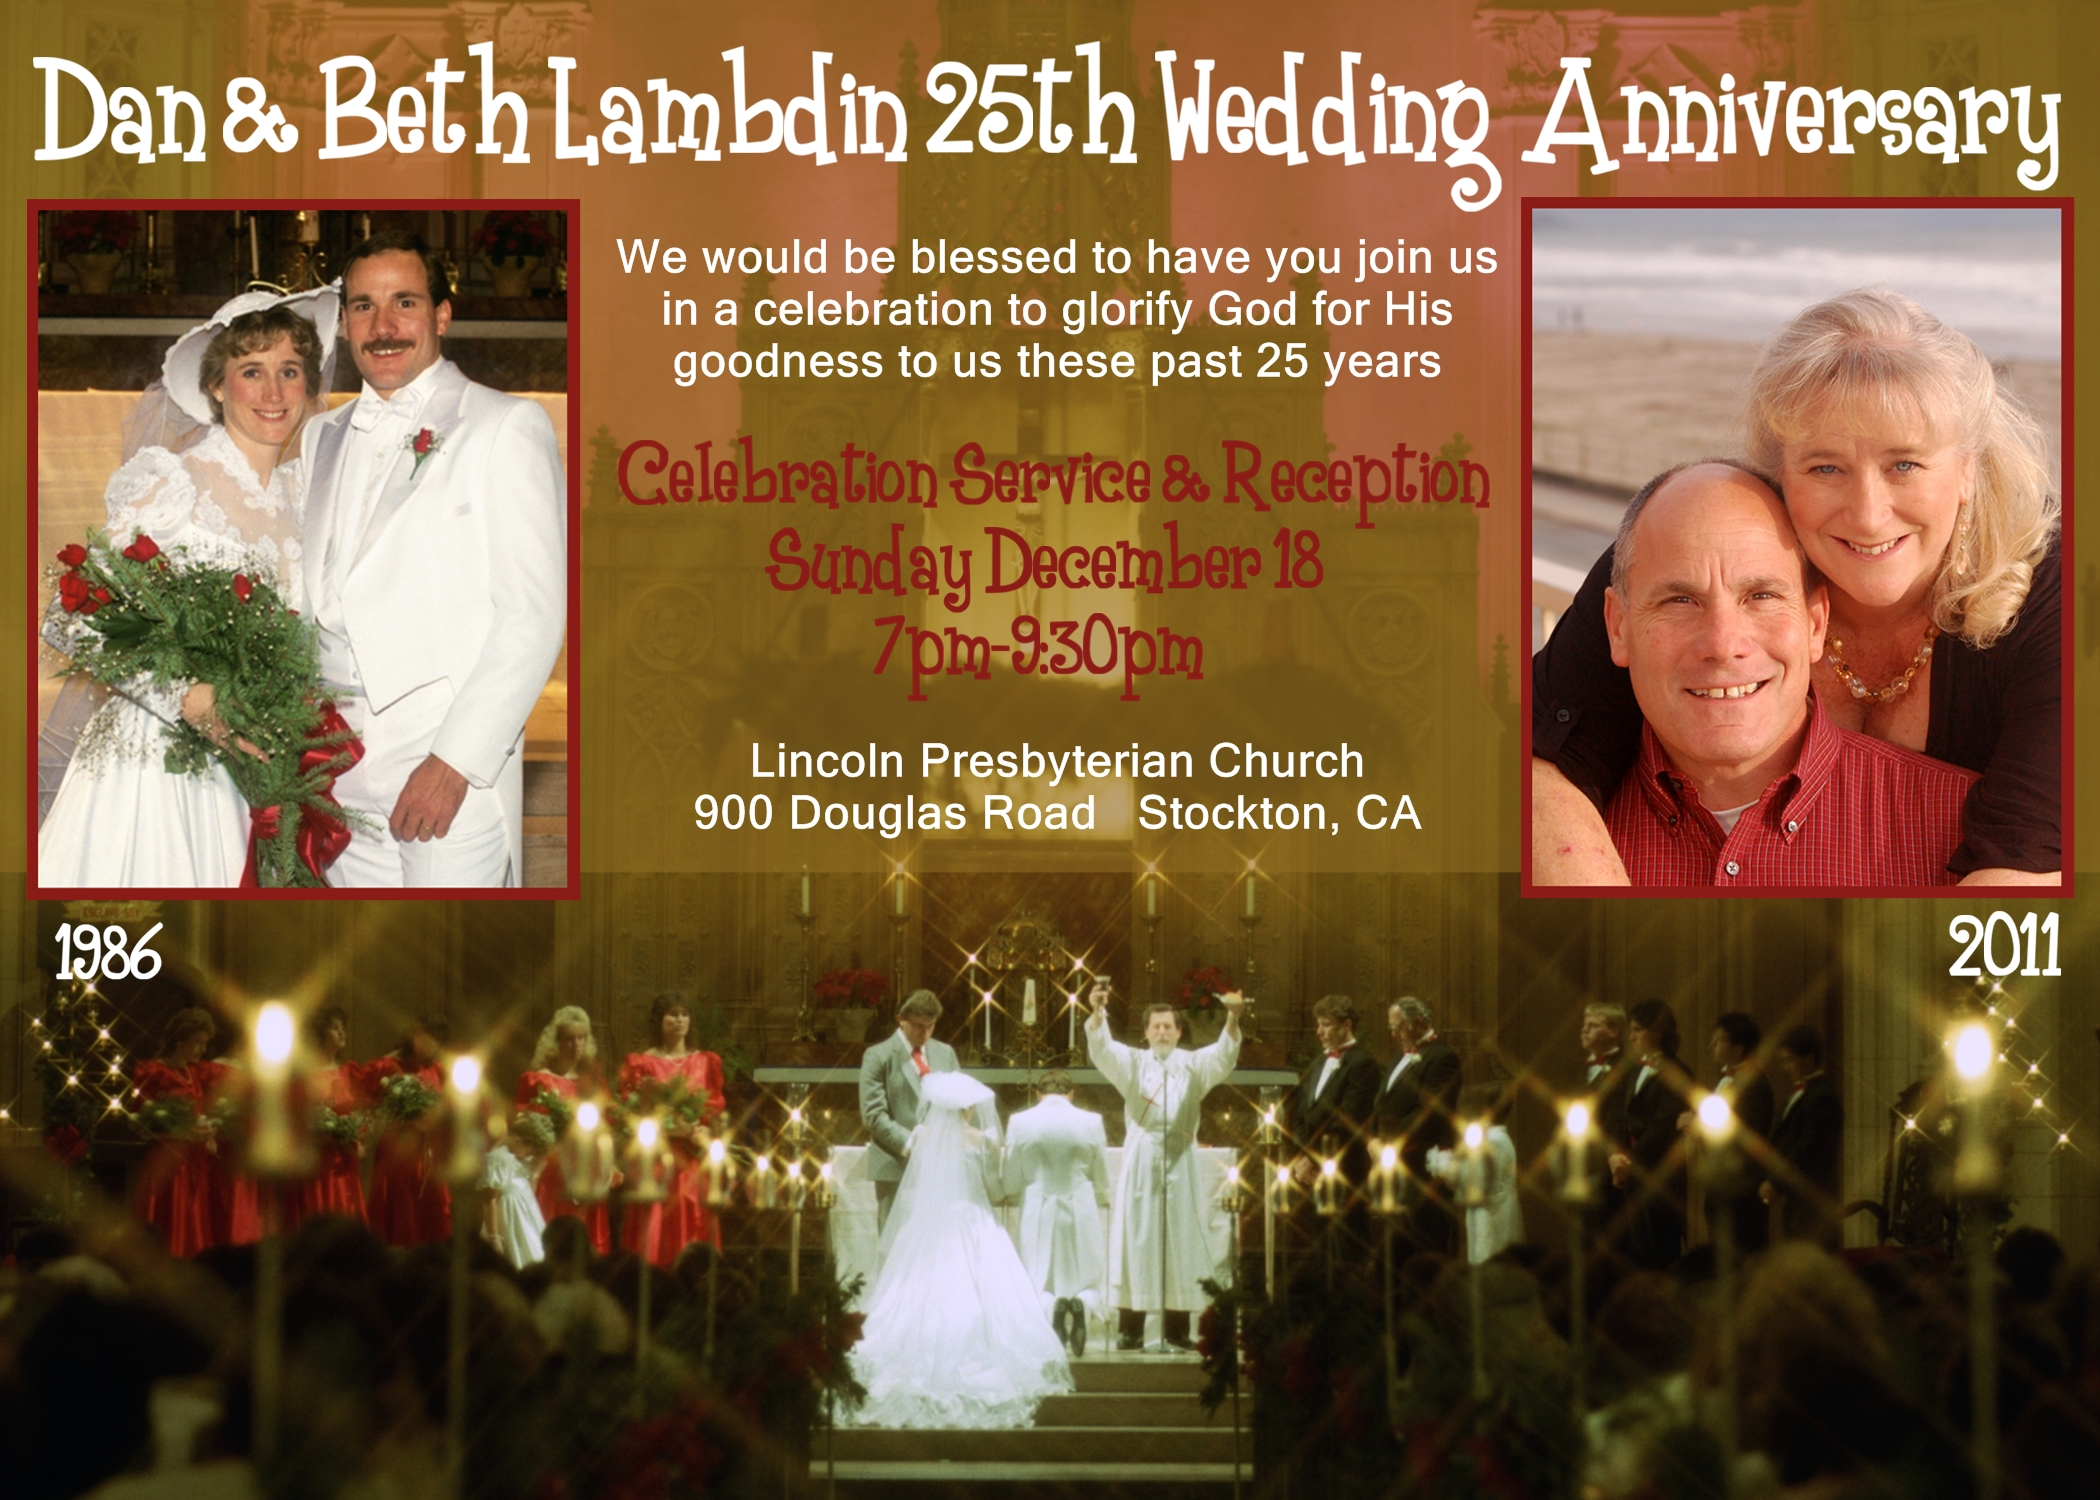 25 Wedding Anniversary Celebration Ideas: Our 25th Wedding Anniversary Celebration Service